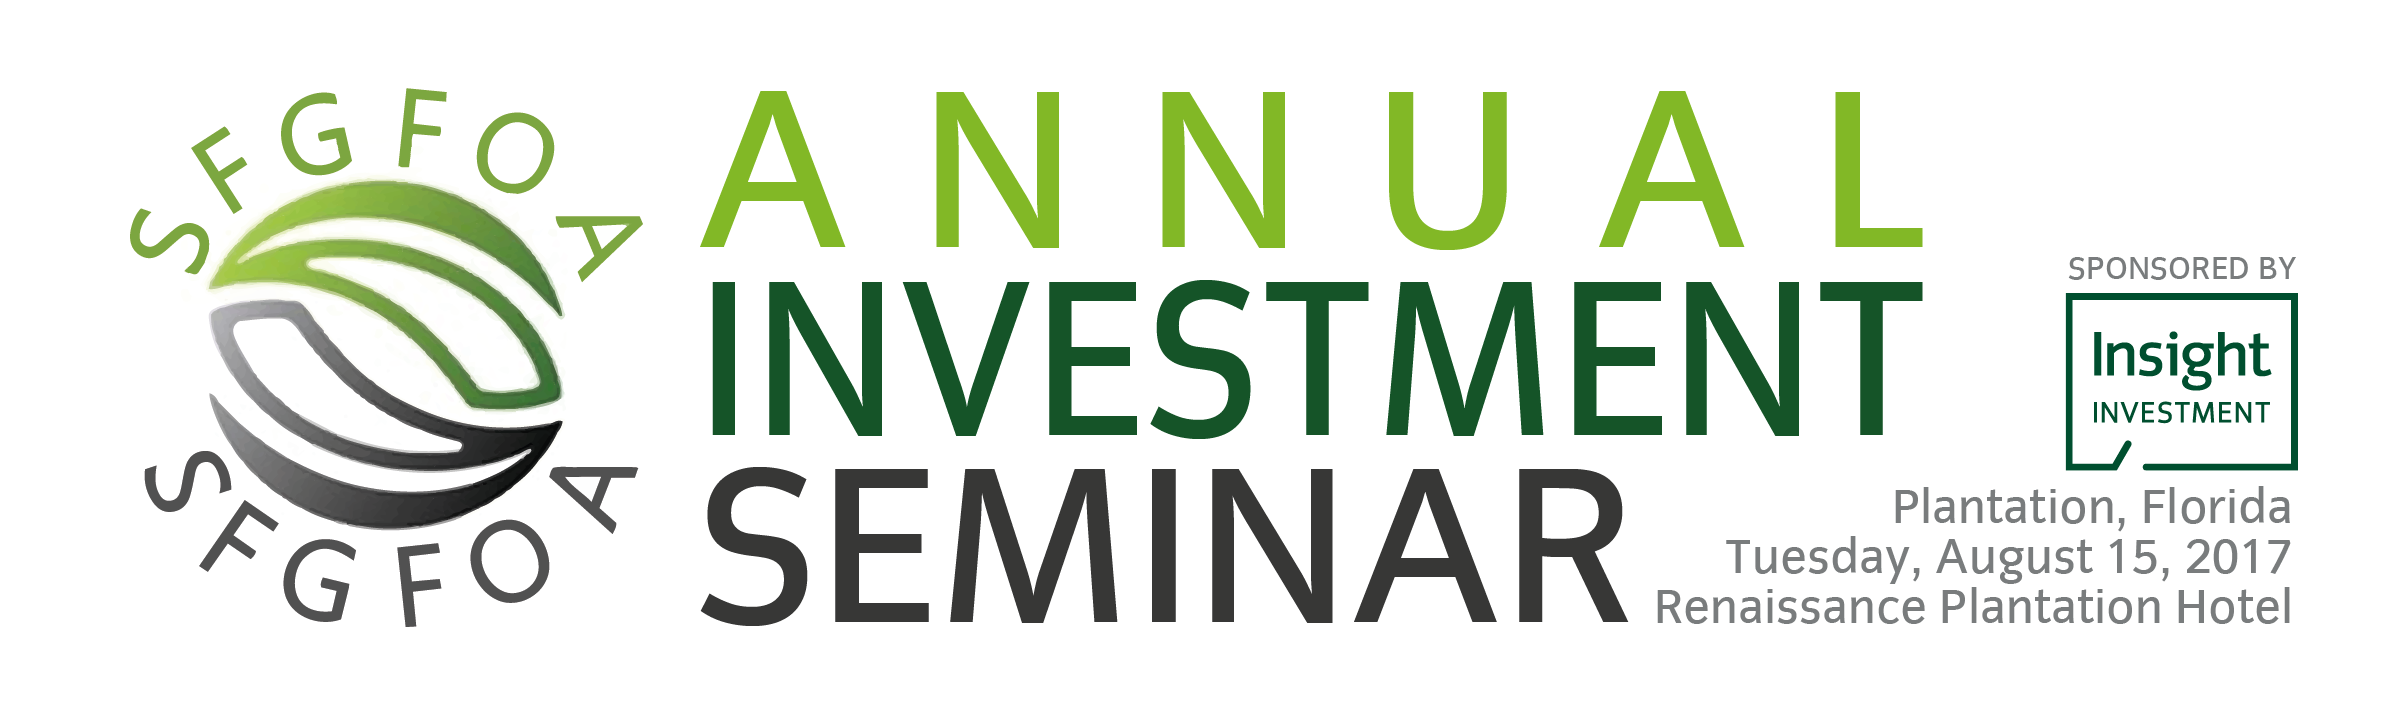 Annual Investment Seminar 2017-Email Banner Graphi